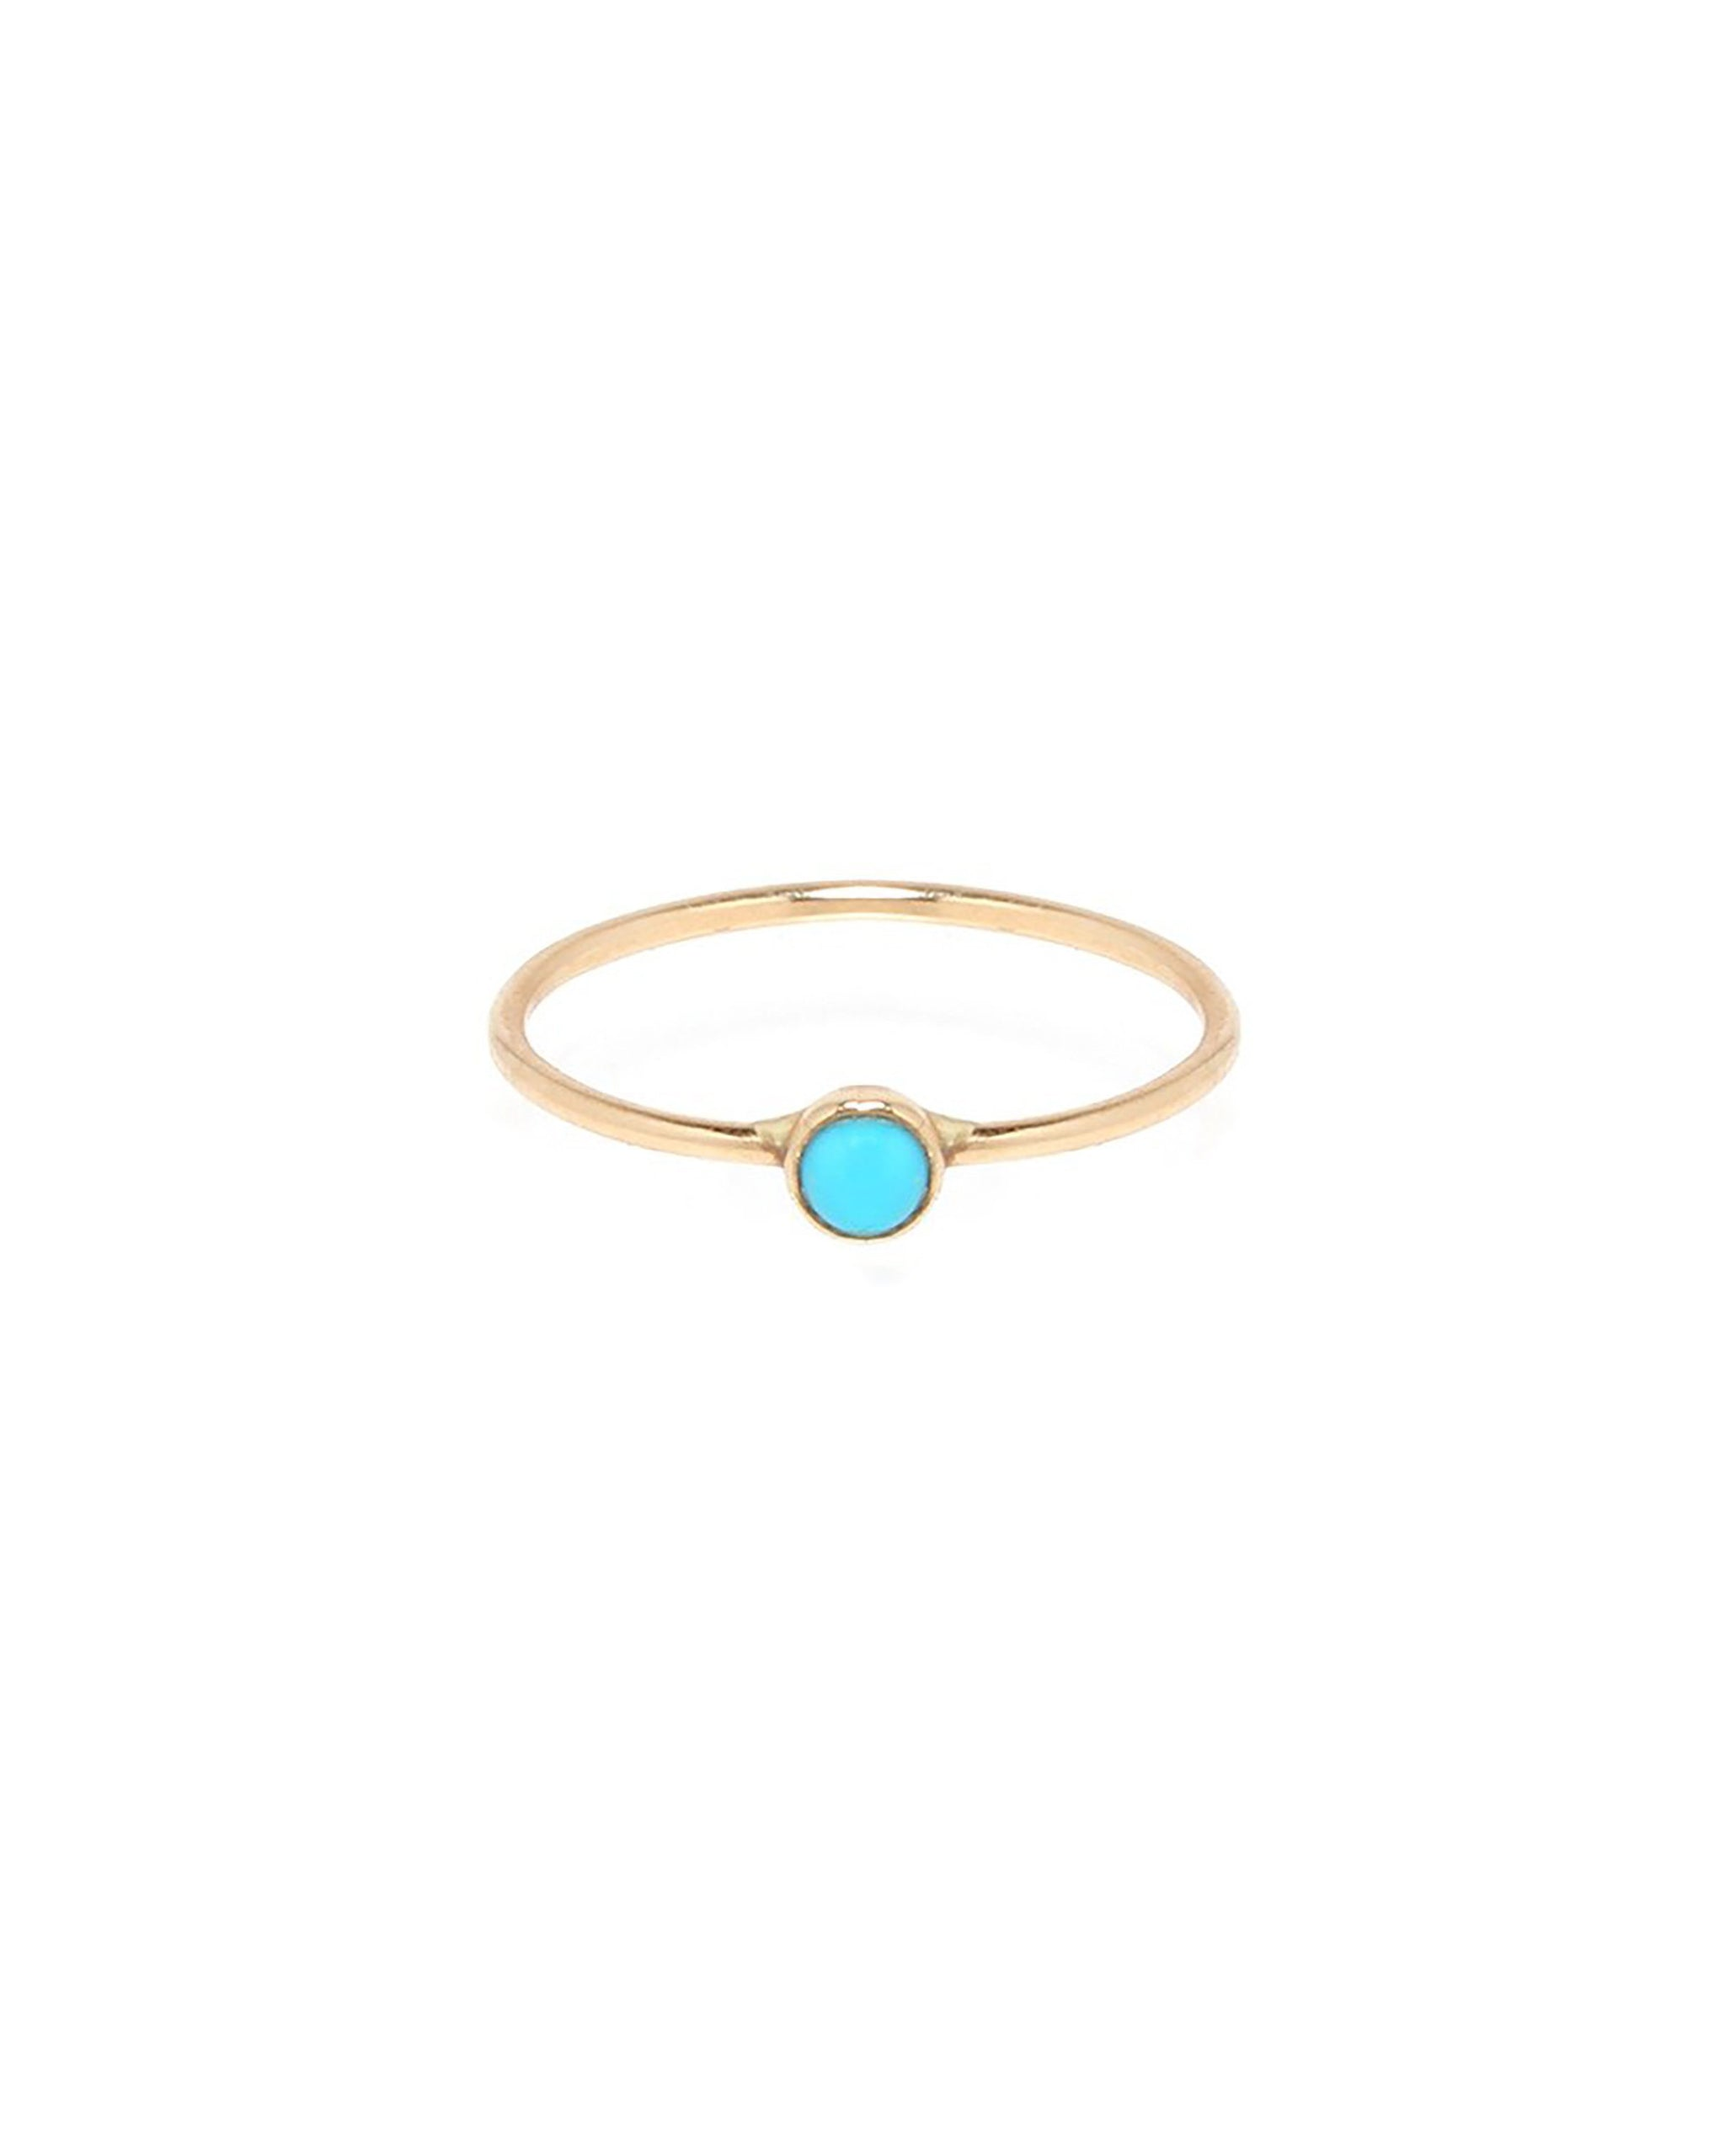 LUNA RING - TURQUOISE + TOBACCO